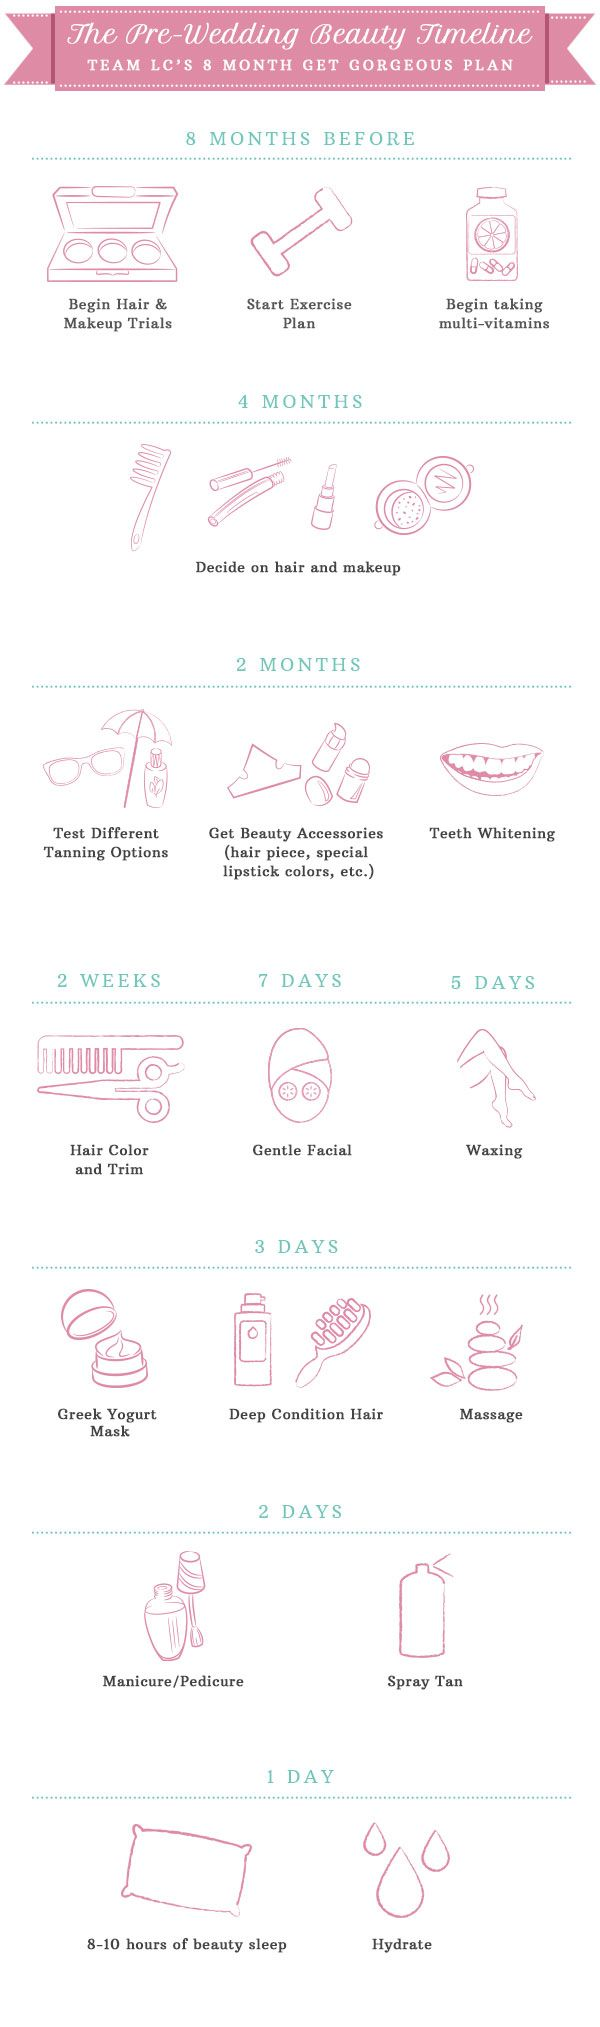 Pre-wedding Beauty Timeline